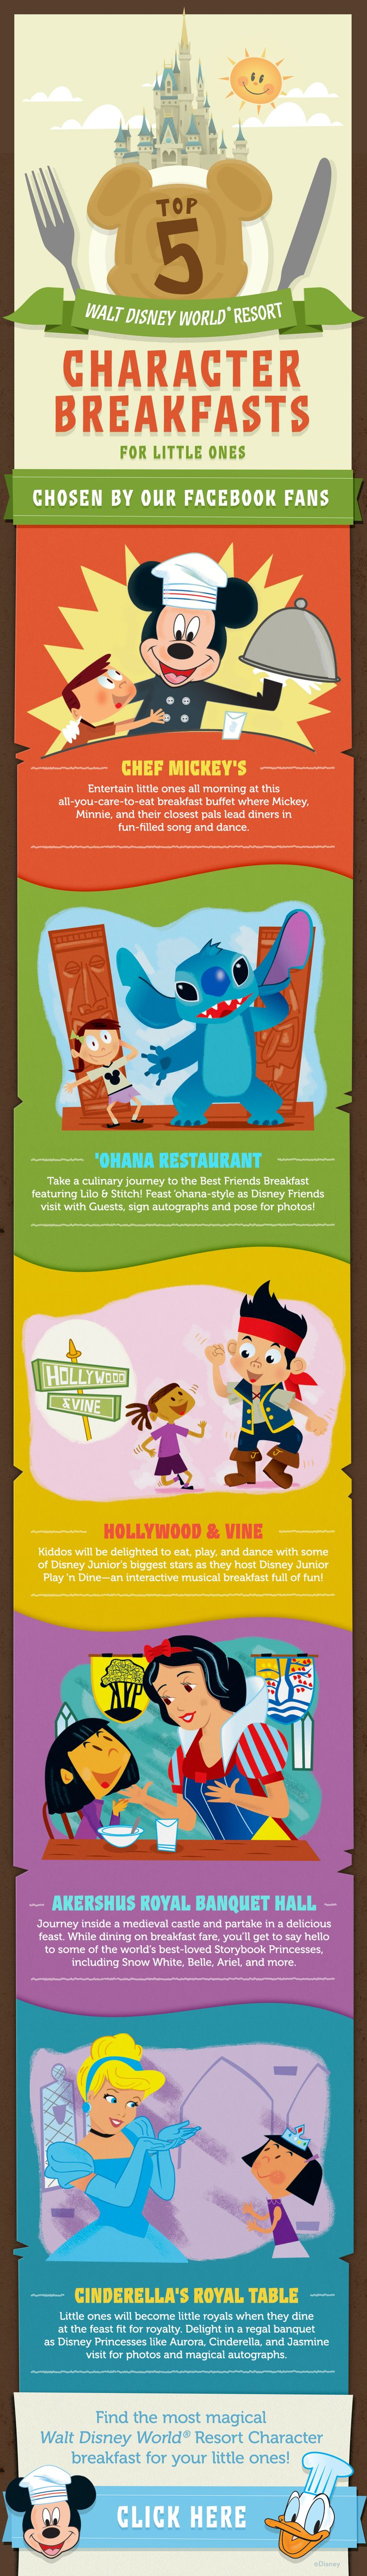 Top 5 Character Breakfasts for little ones at Walt Disney World! Let's start planning your Magical Walt Disney World getaway today! donnakay@thewdwguru.com